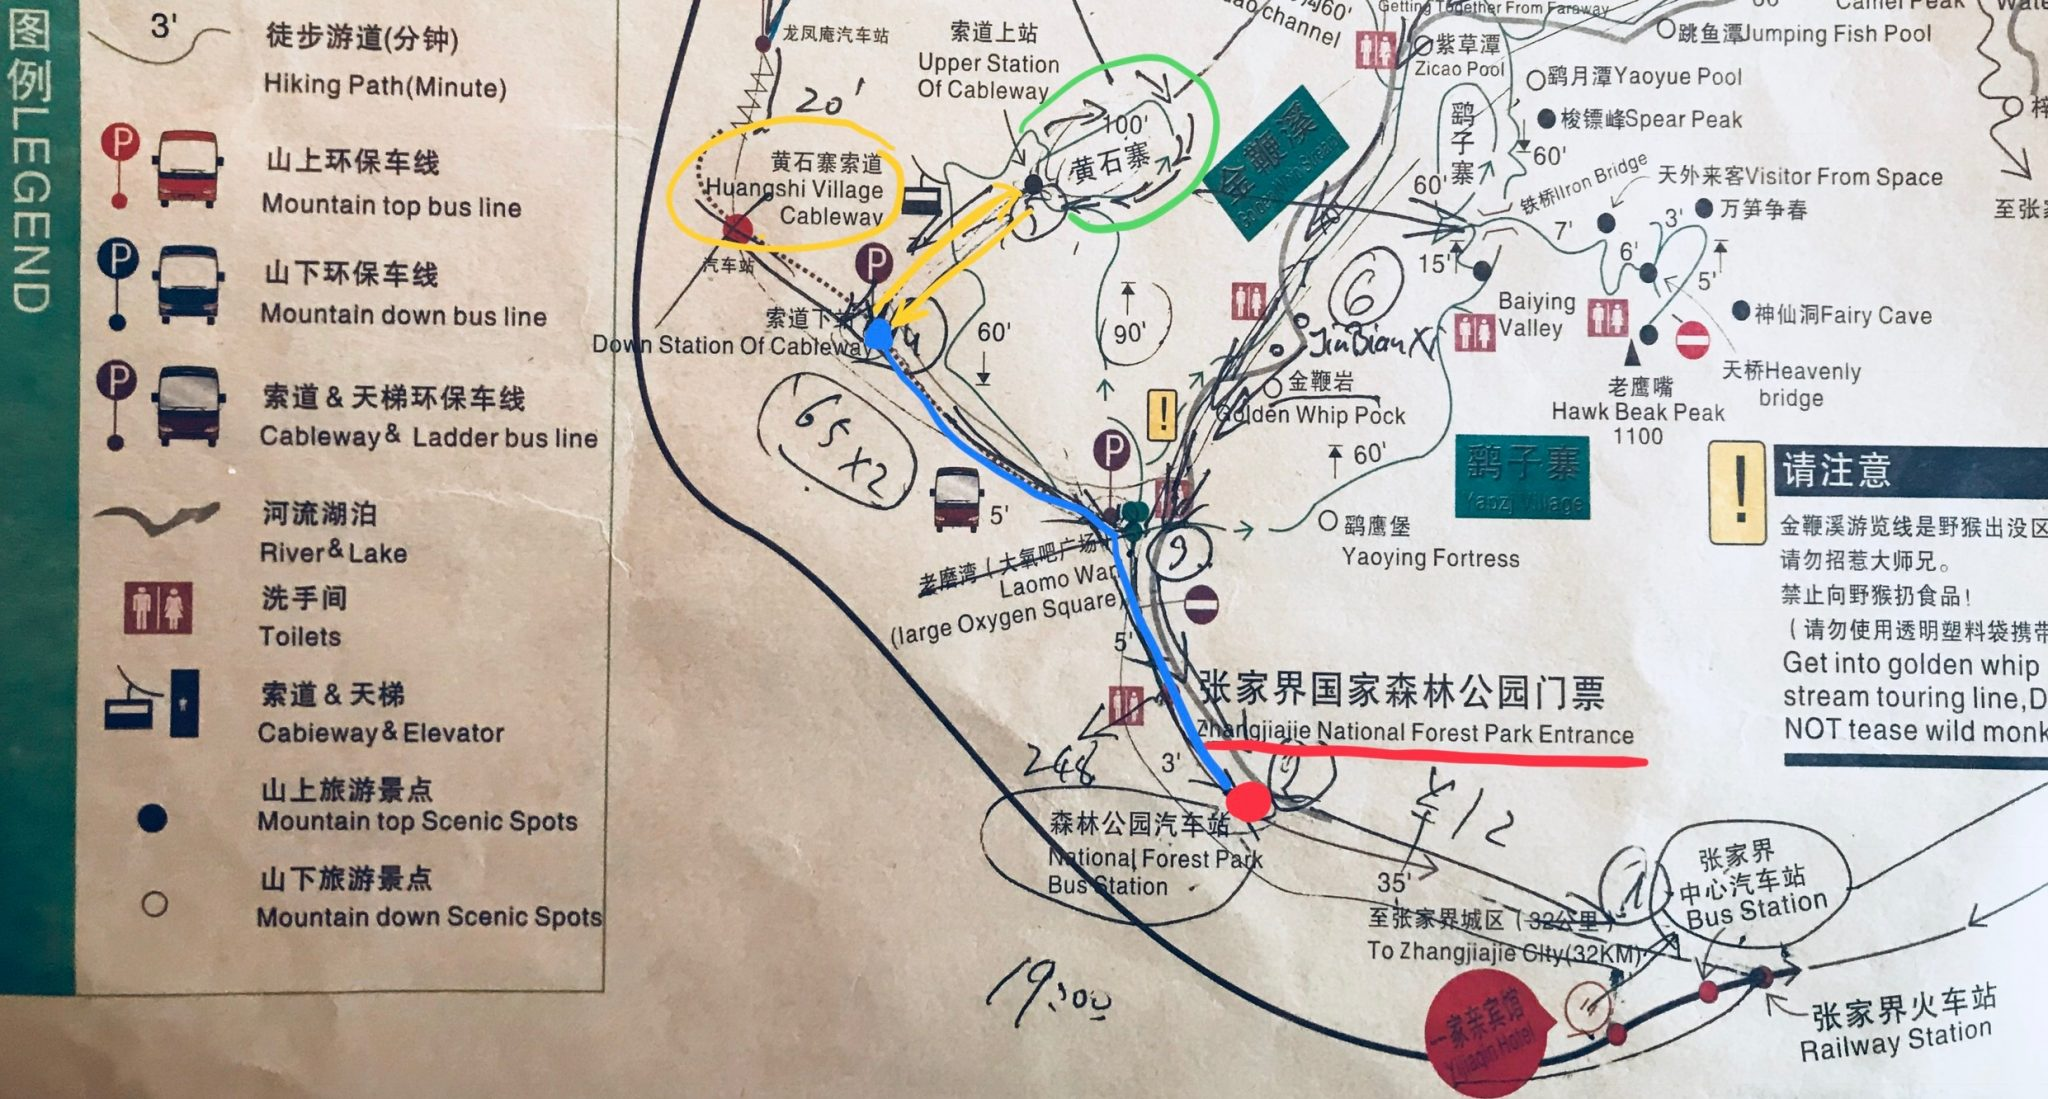 Second part of the map from the last day in Zhangjiajie National Park.